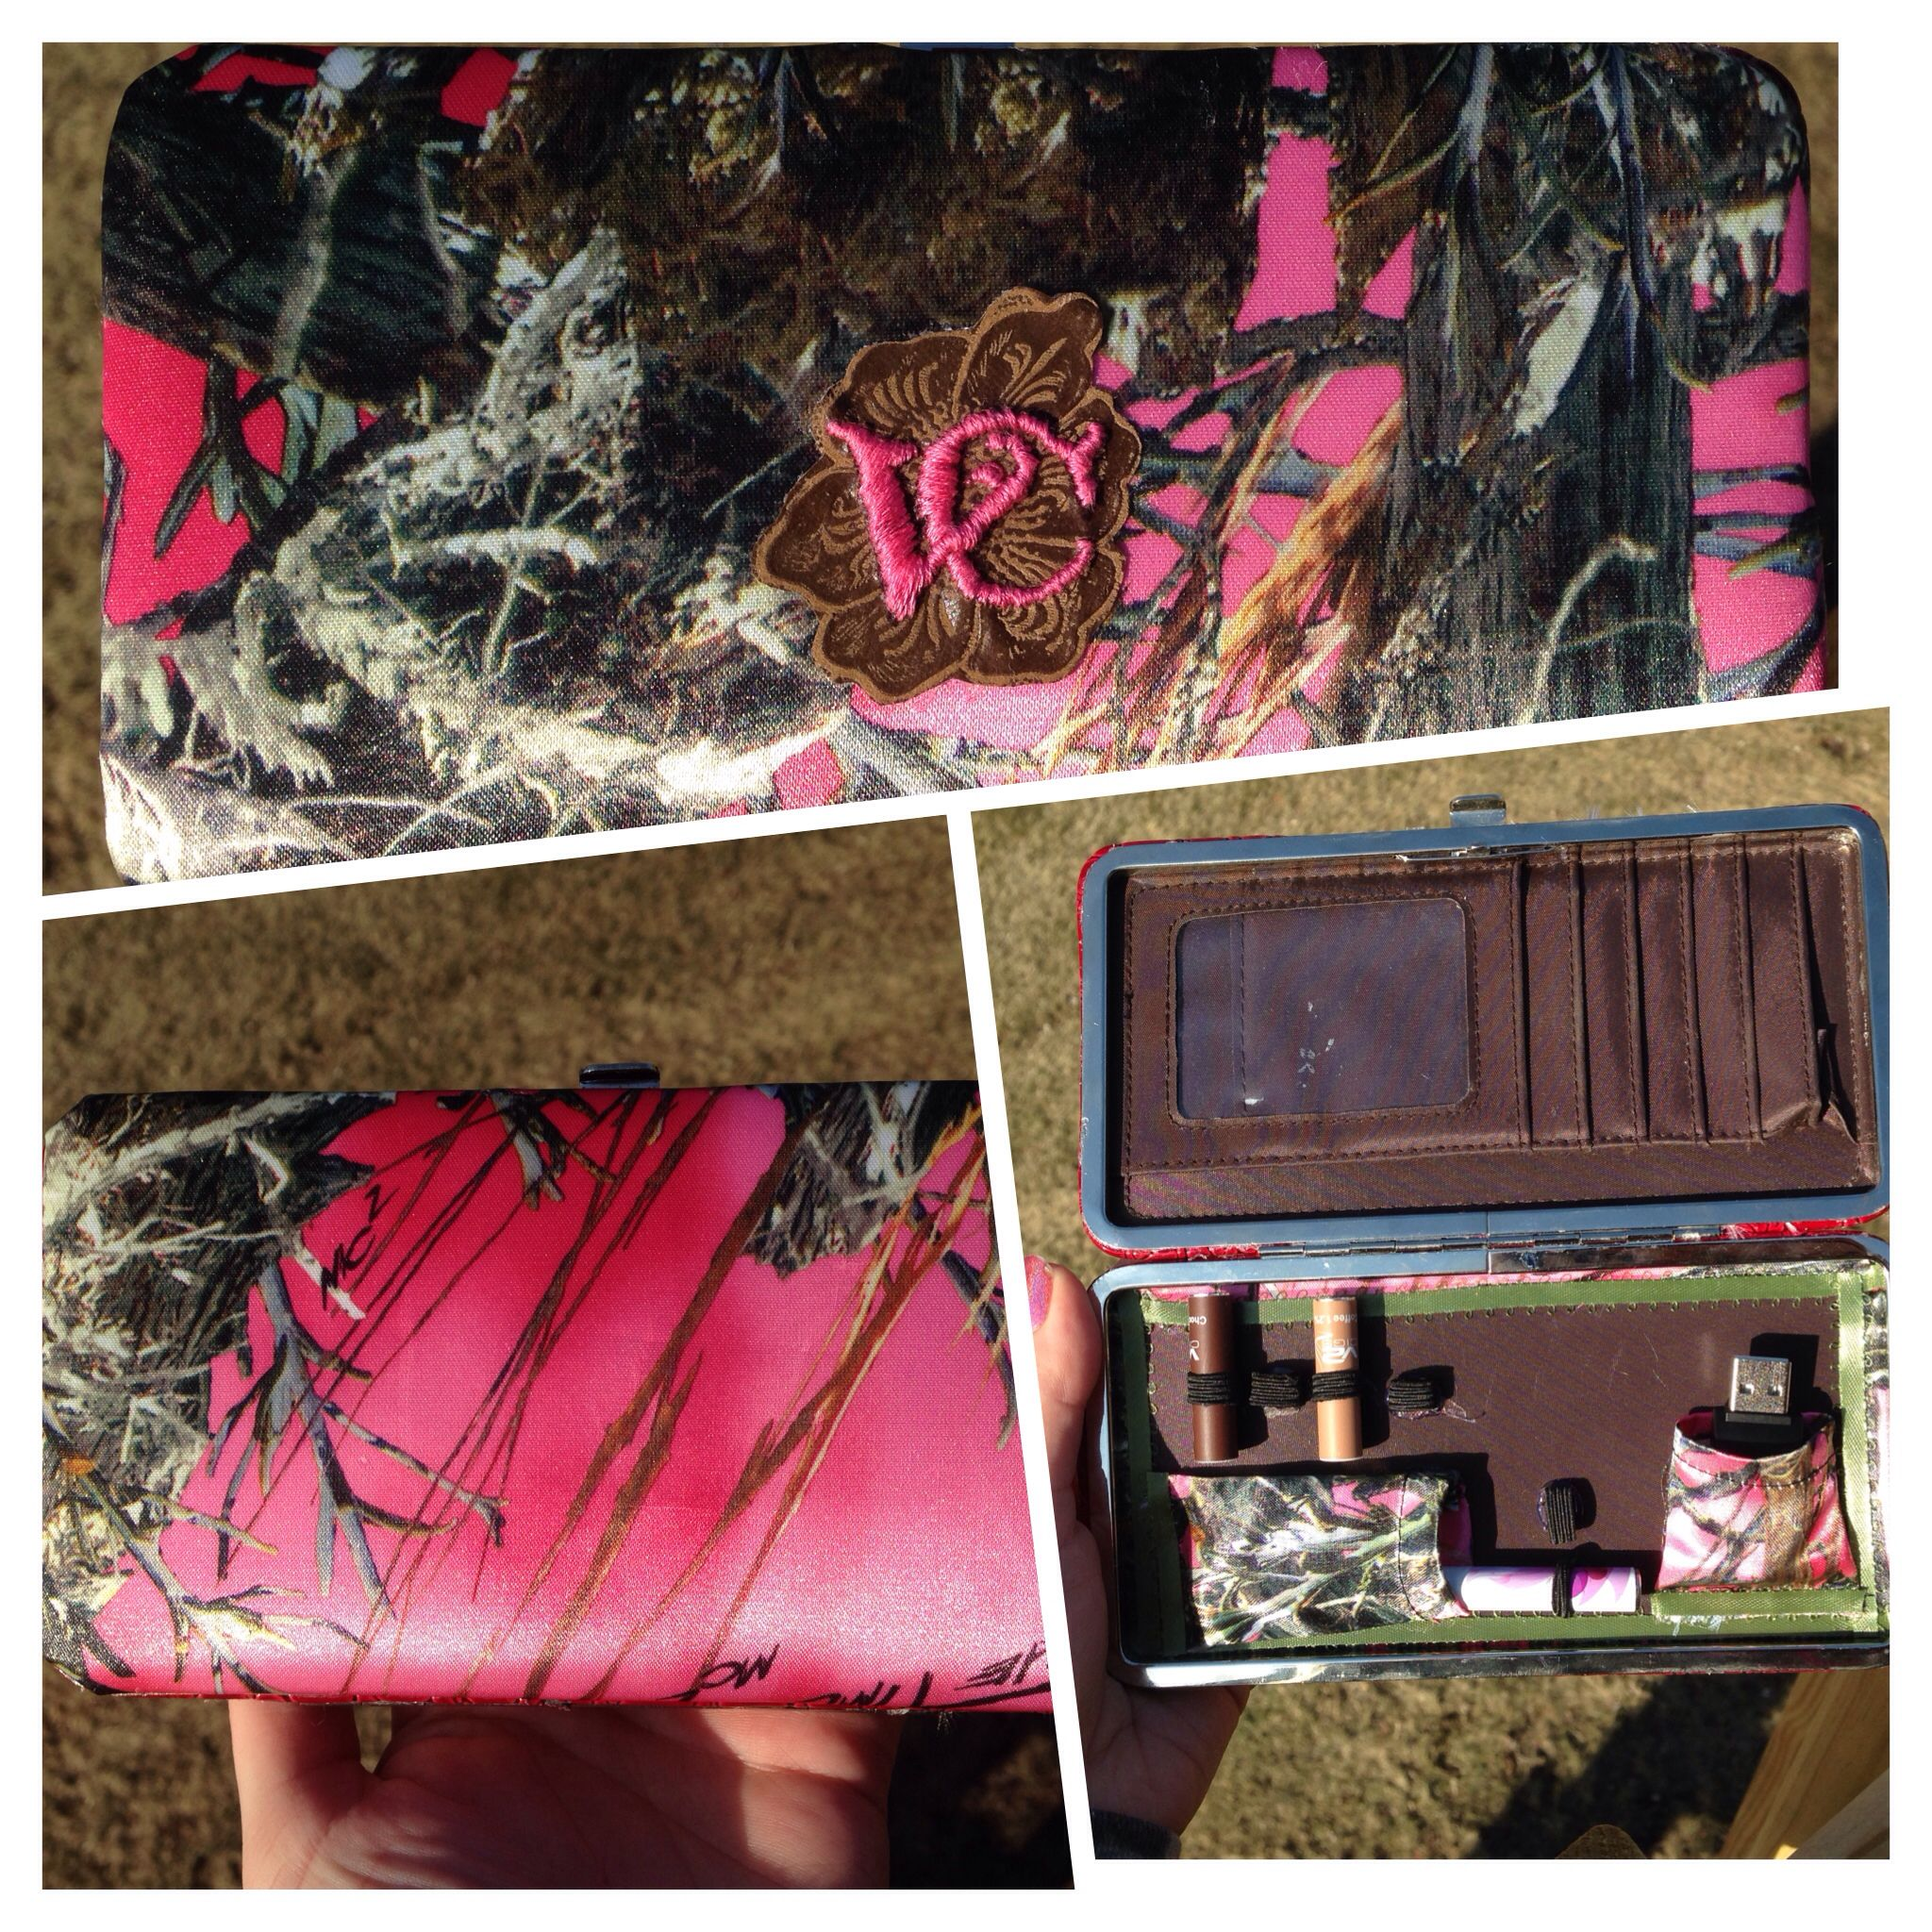 I made a pink camo vape carrying case. Fabric from Joann's, clutch from 2nd hand store for $3, I used elastic from Walmart and satin stitched the vapor couture emblem on a flower pattern piece of faux leather and used fabric glue to put it on the front.